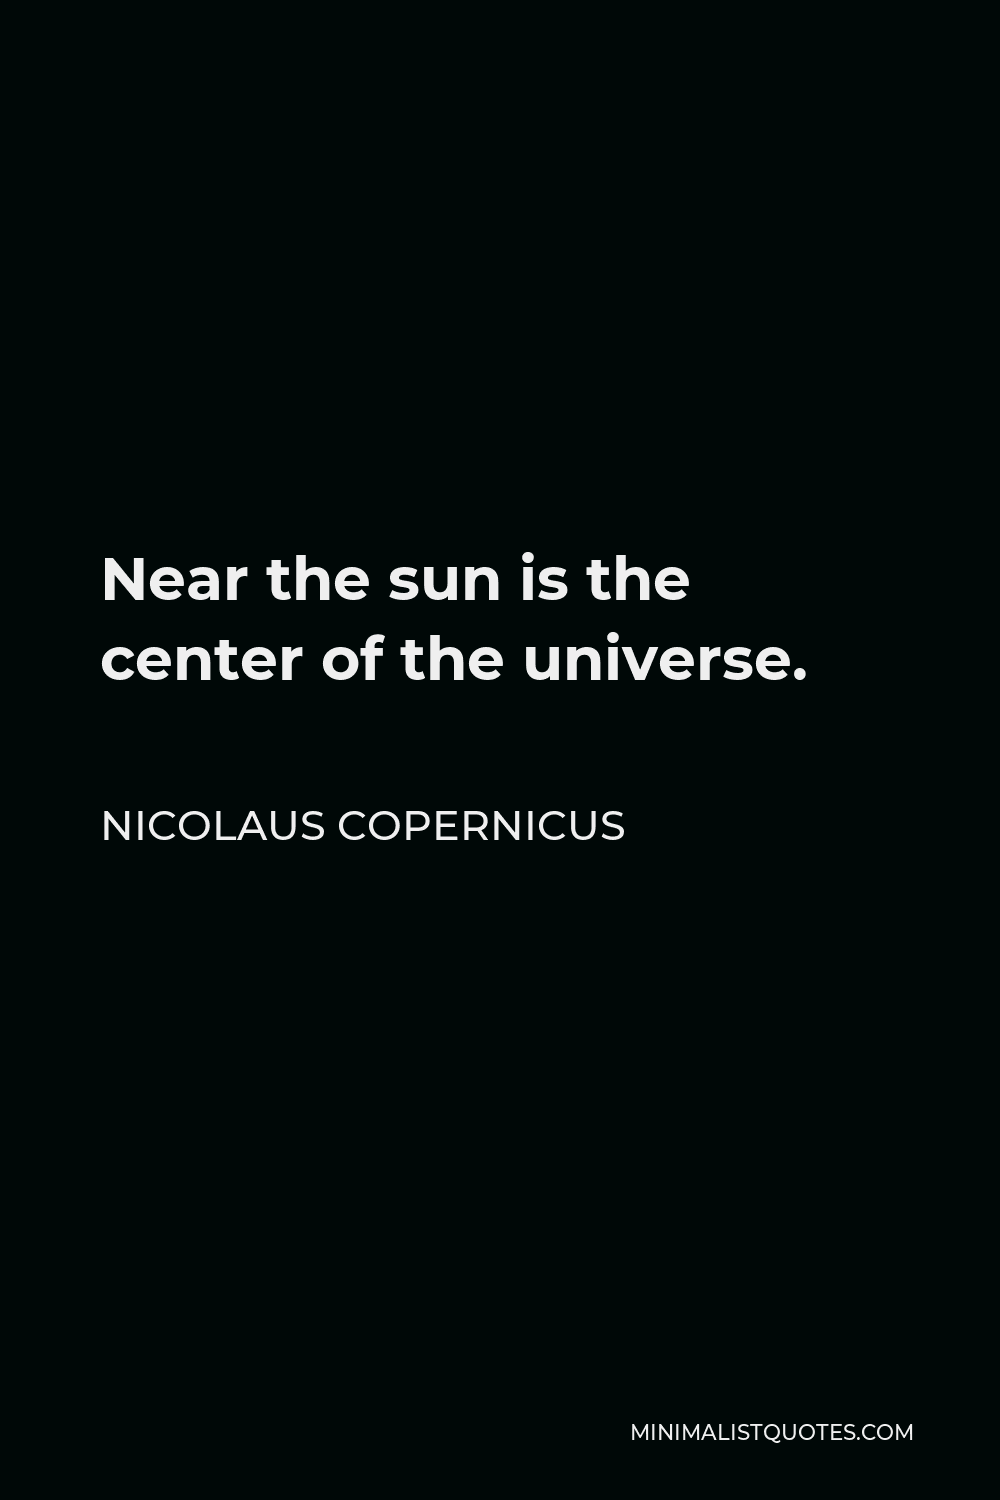 Nicolaus Copernicus Quote - Near the sun is the center of the universe.